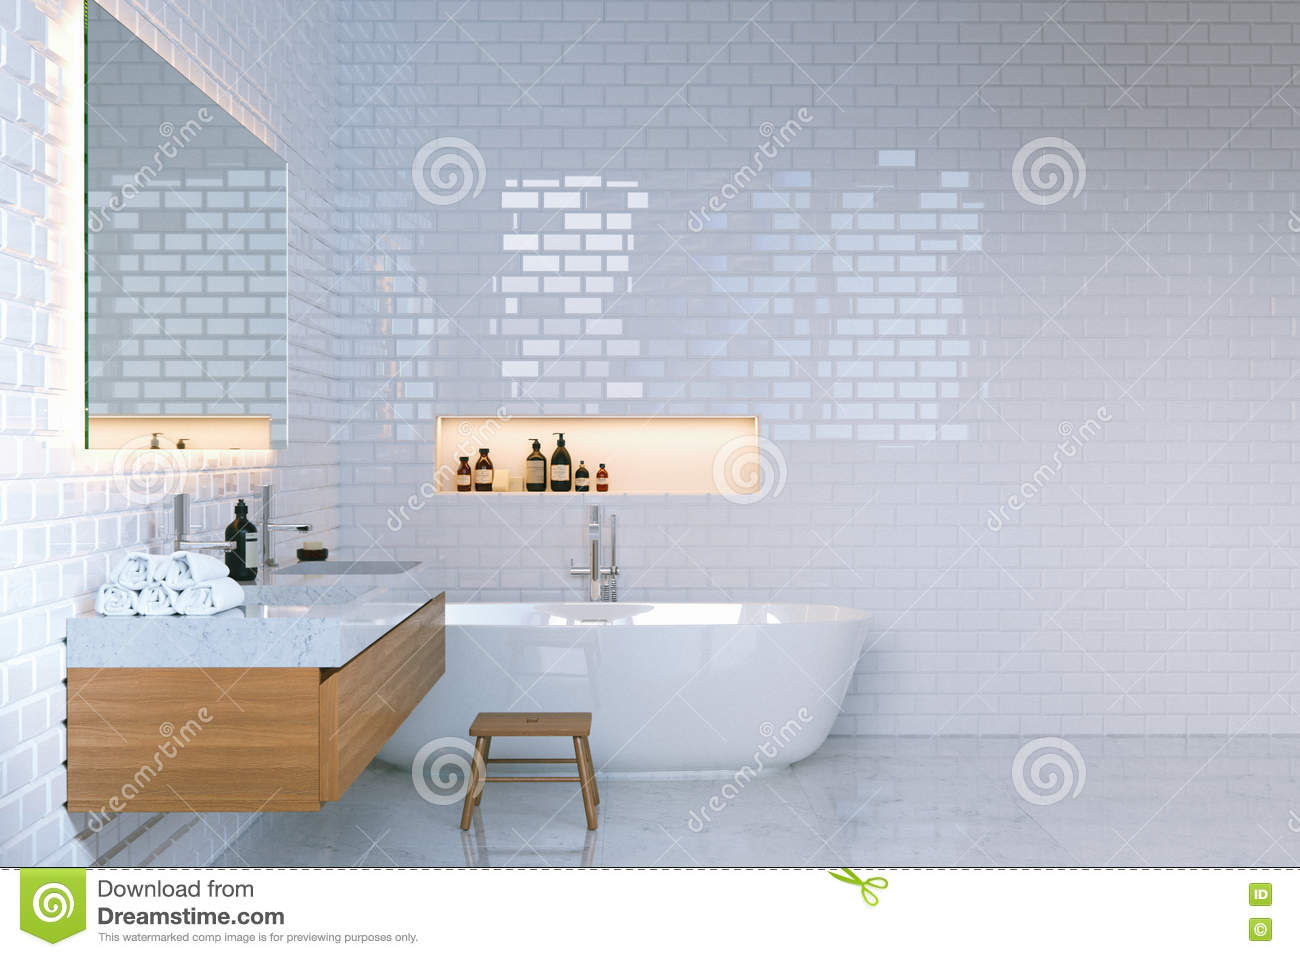 luxury minimalist bathroom interior with brick walls. 3d render